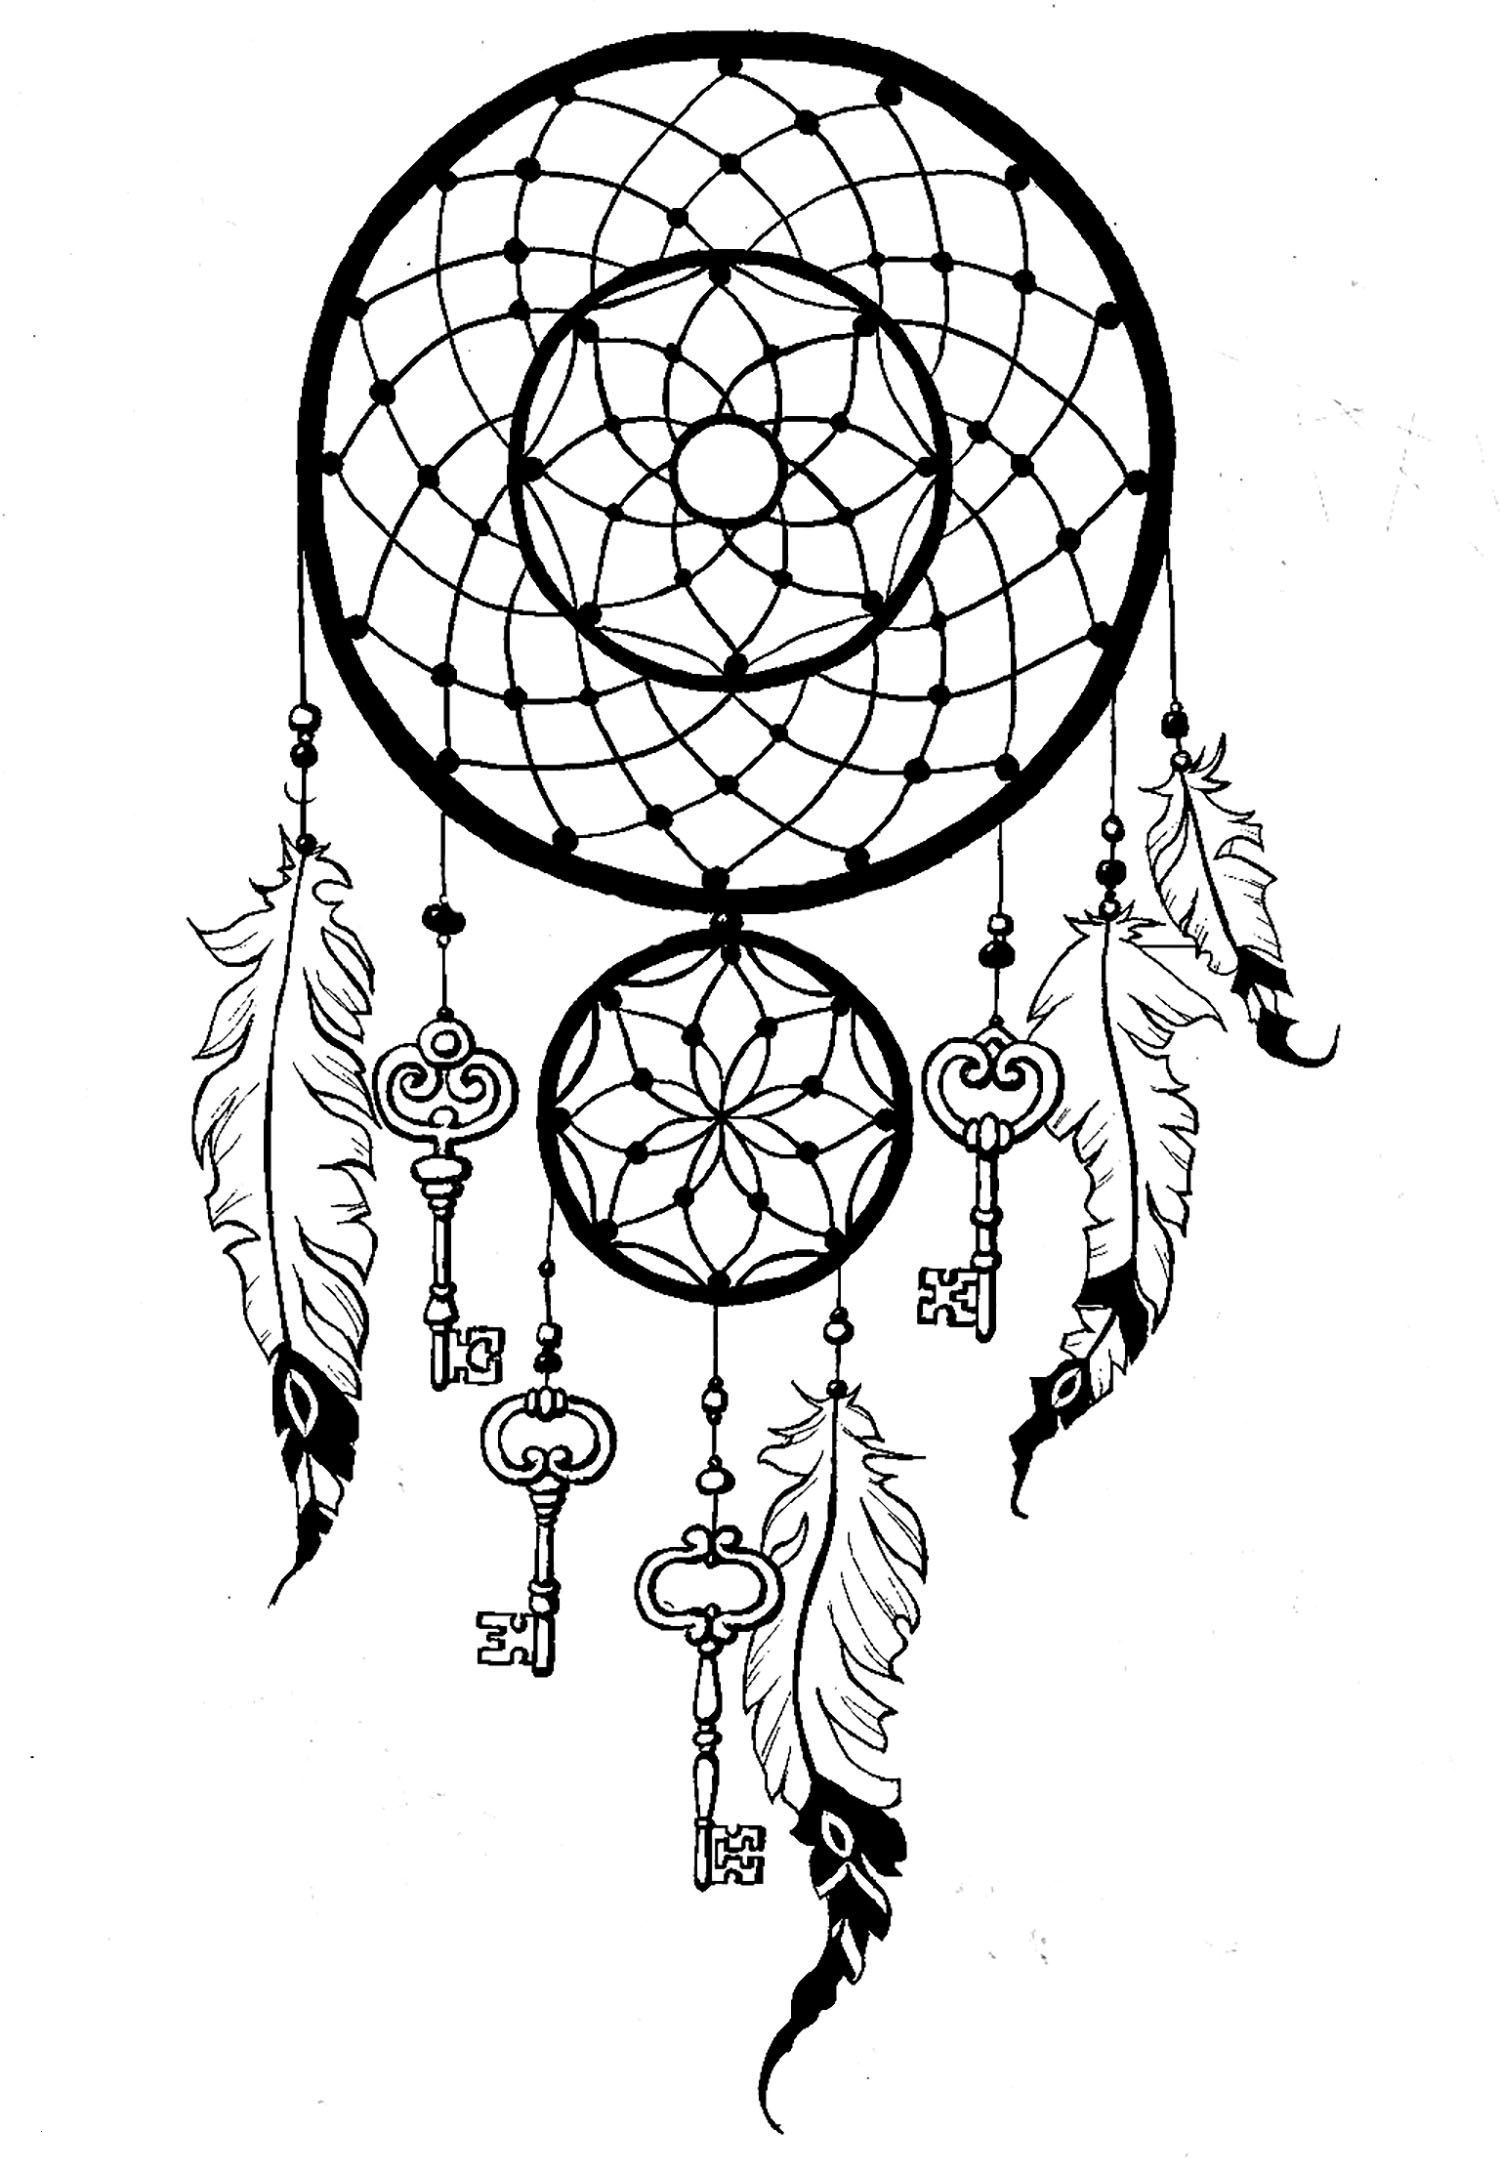 Dream Catcher Coloring Pages  Printable 11i - To print for your project